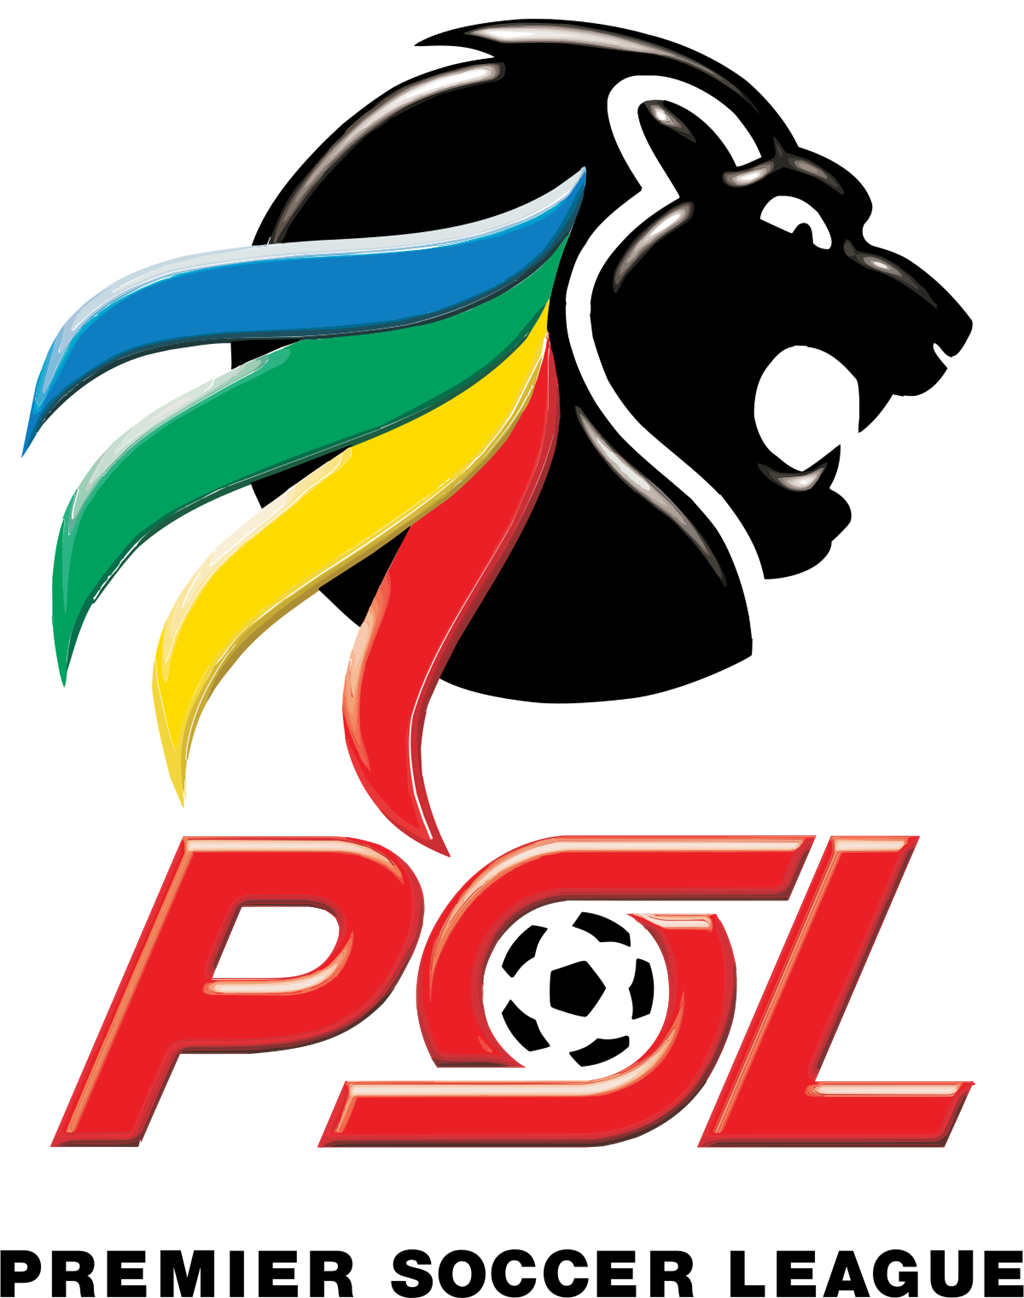 The PSL has made a decision to do whatever it takes to restart the campaign, and we'll have to live with that whether we like it or not.